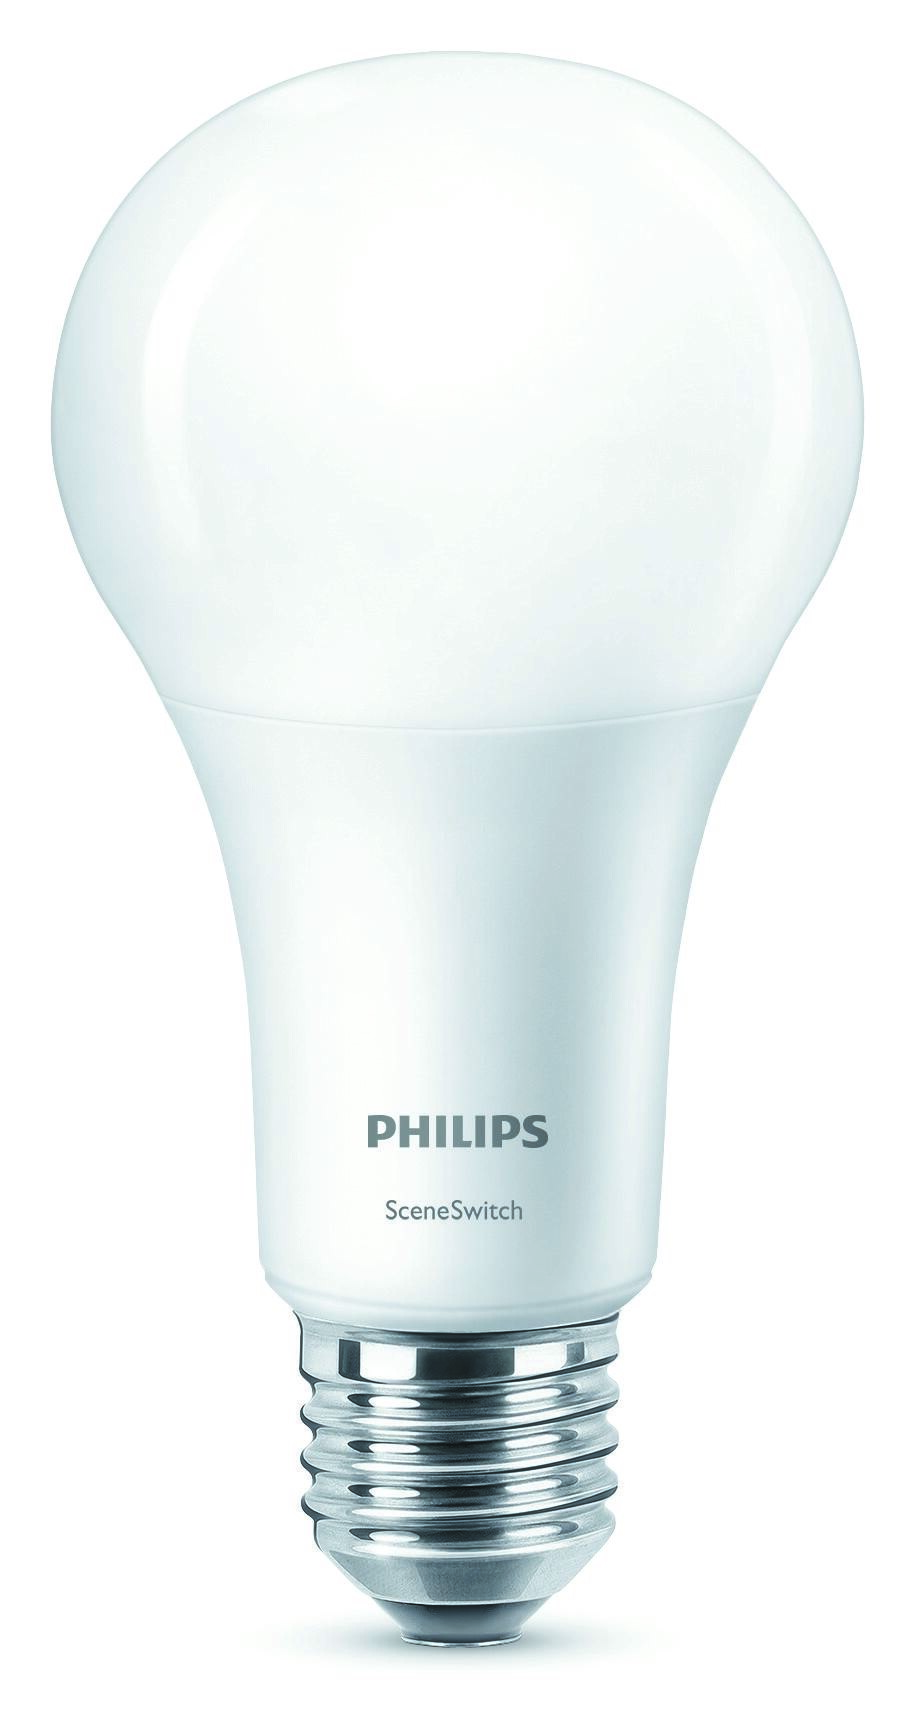 Philips LED SceneSwitch E27 14W 1521lm 2200K + 2500K + 2700K Ampoule Opaque